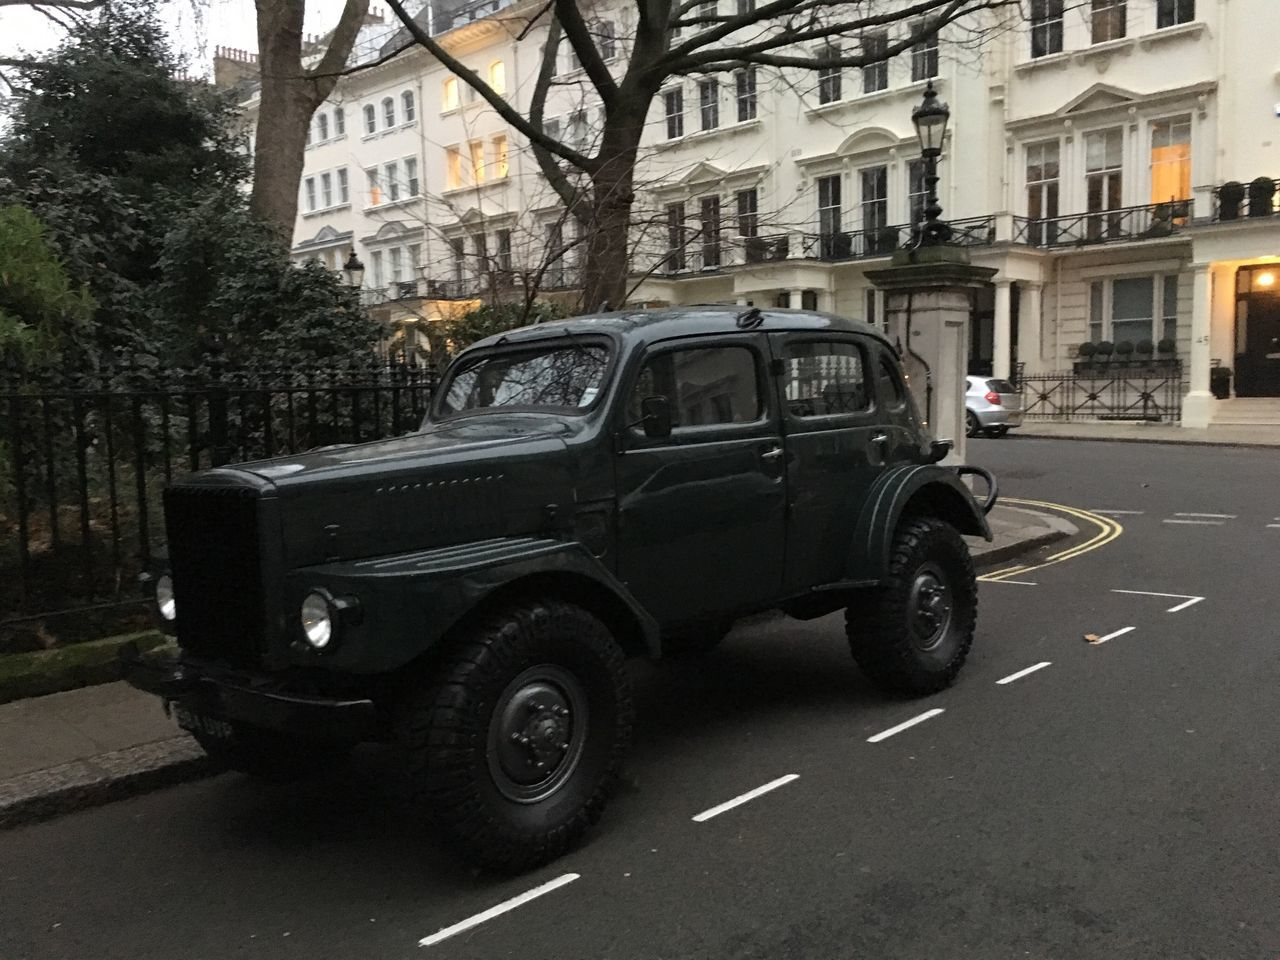 Car Transportation Building Exterior Land Vehicle Mode Of Transport Street City Architecture Road Built Structure Stationary Outdoors Day No People South Kensington South Kensington London Neighbour Billionaire  MASERATI Ferrari Cars Rolls Royce Range Rovers Bentley Hyde Park, London